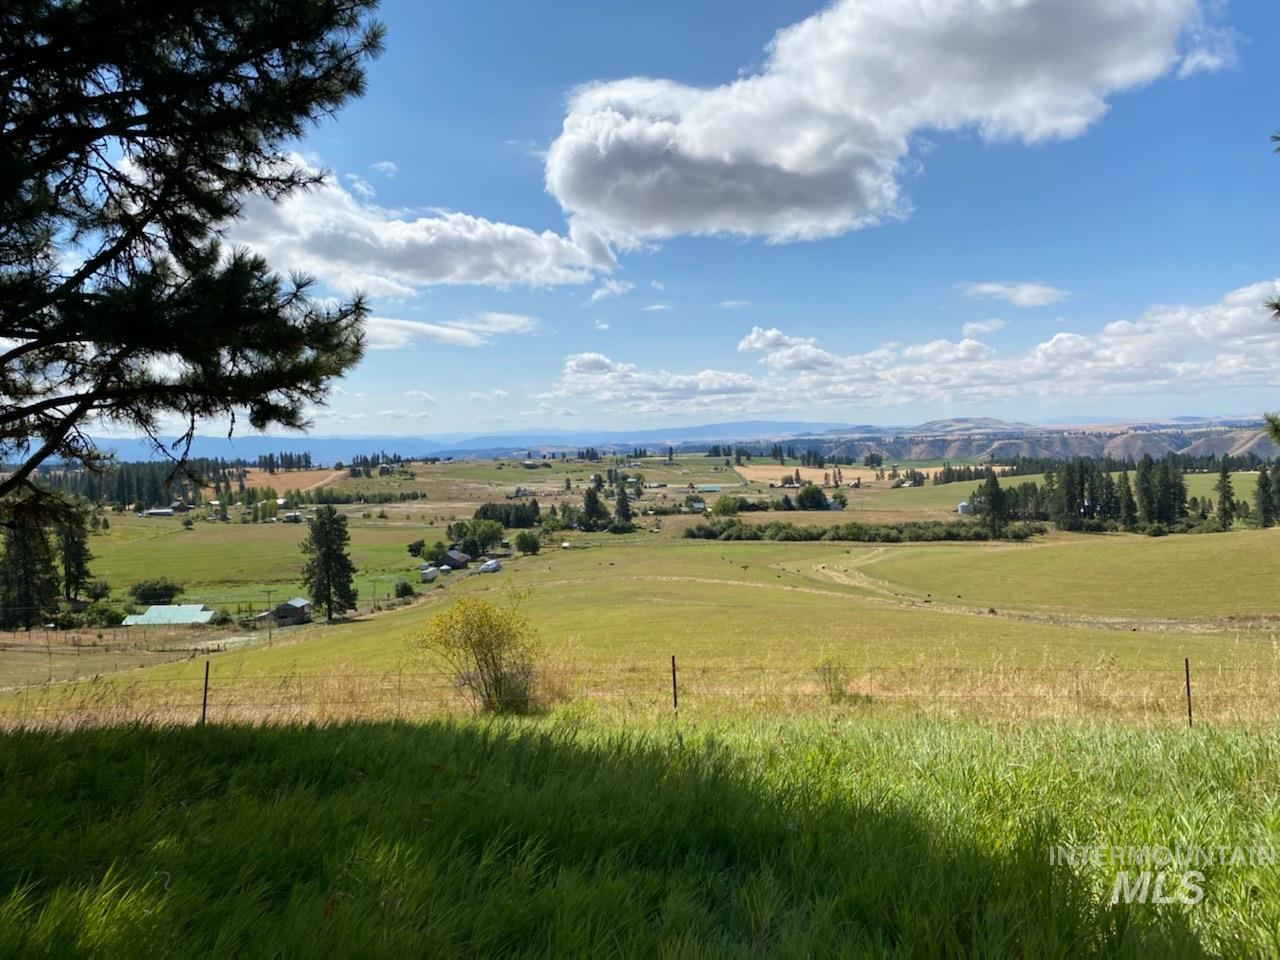 TBD Simler Rd Parcel 2 Property Photo - Kamiah, ID real estate listing